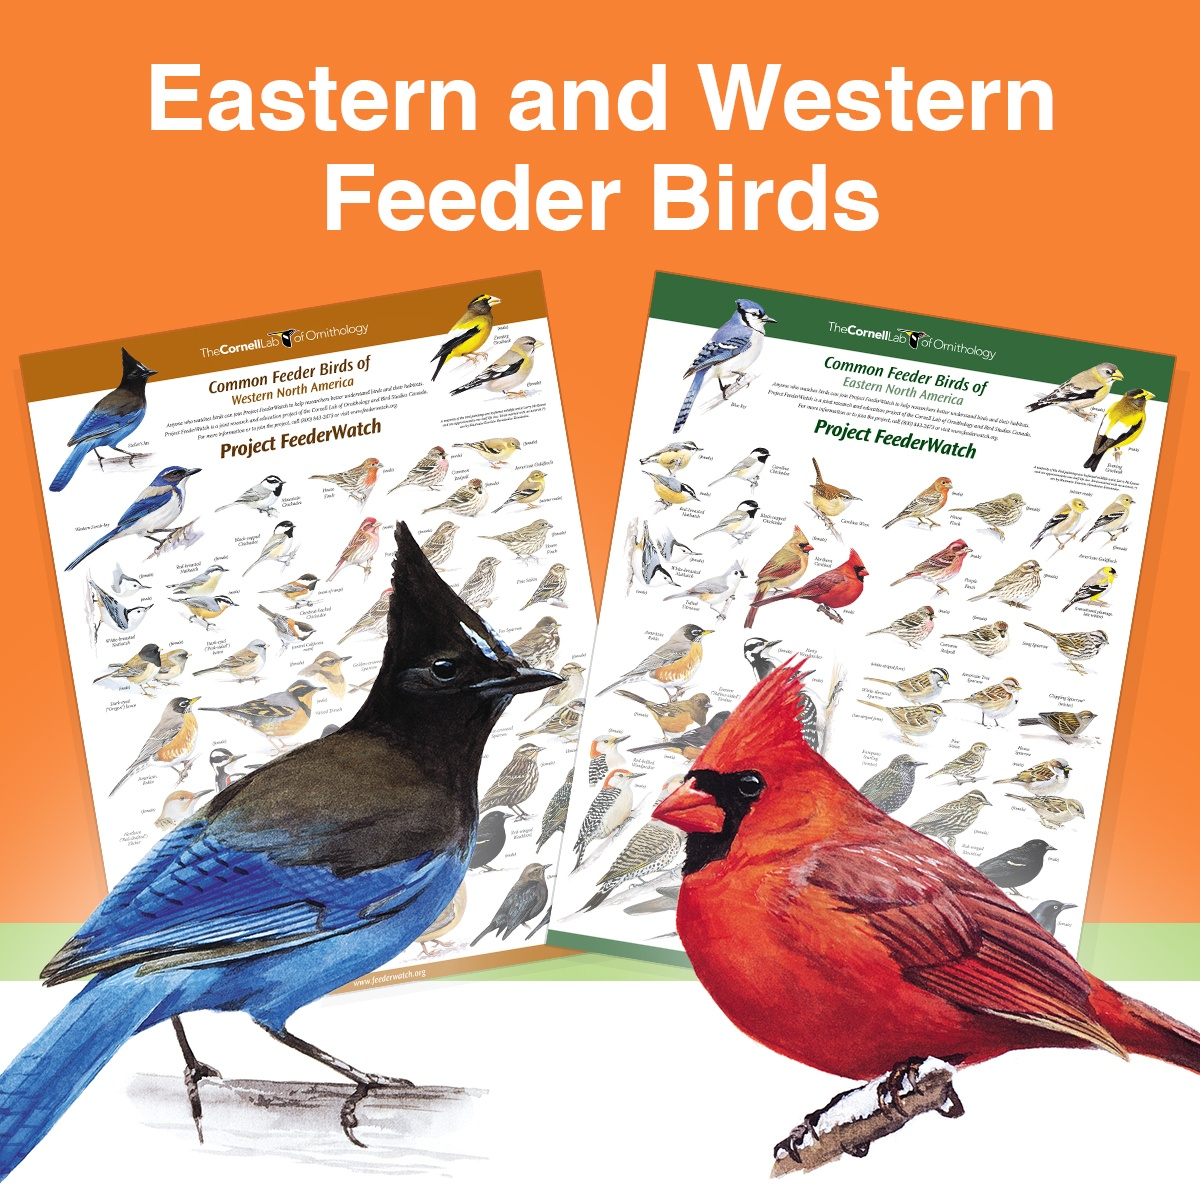 Feederwatch_poster-2.jpg